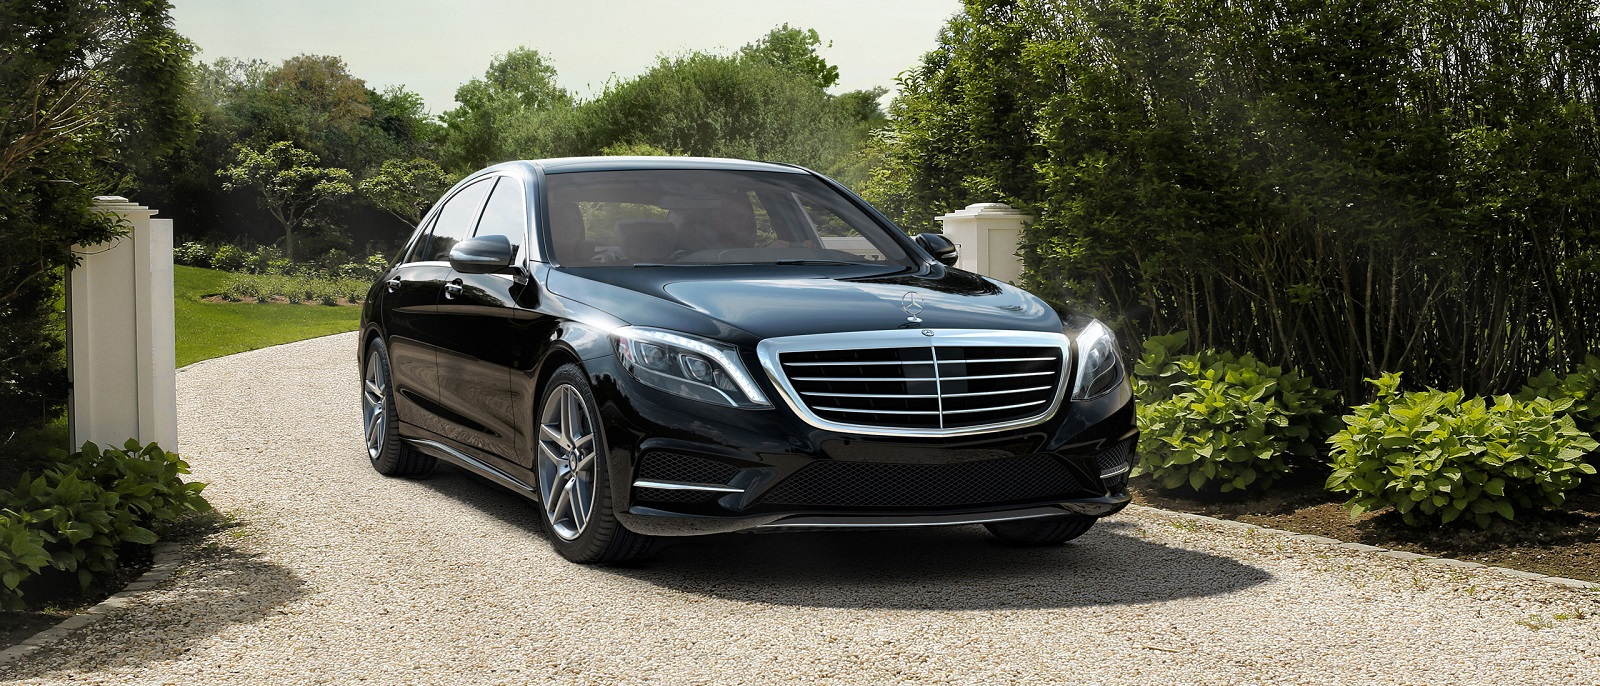 2015 mercedes benz s class sylvania toledo. Black Bedroom Furniture Sets. Home Design Ideas